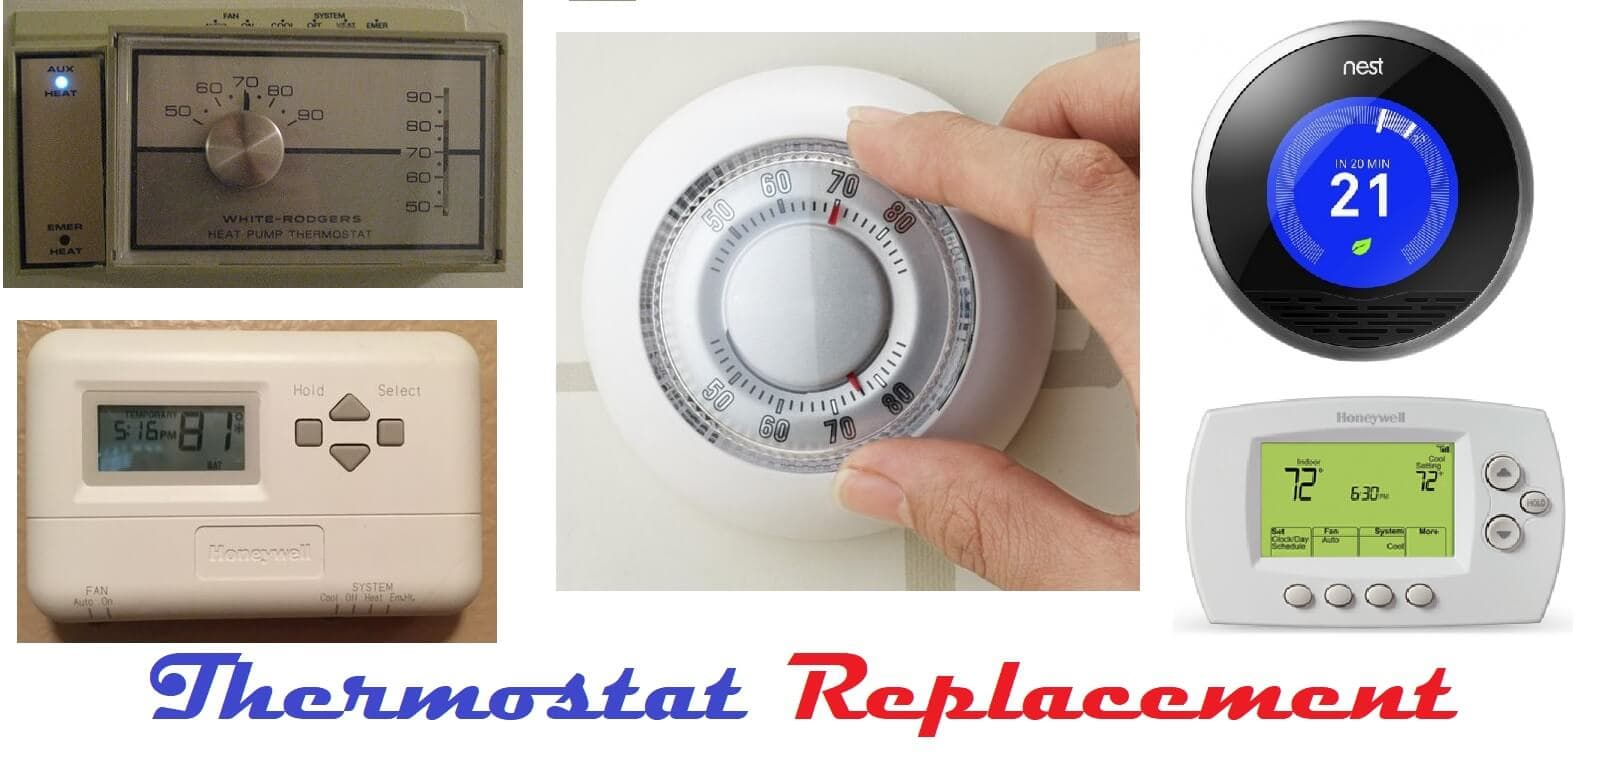 Thermostat Replacement James Campbell Upm Wiring Diagram